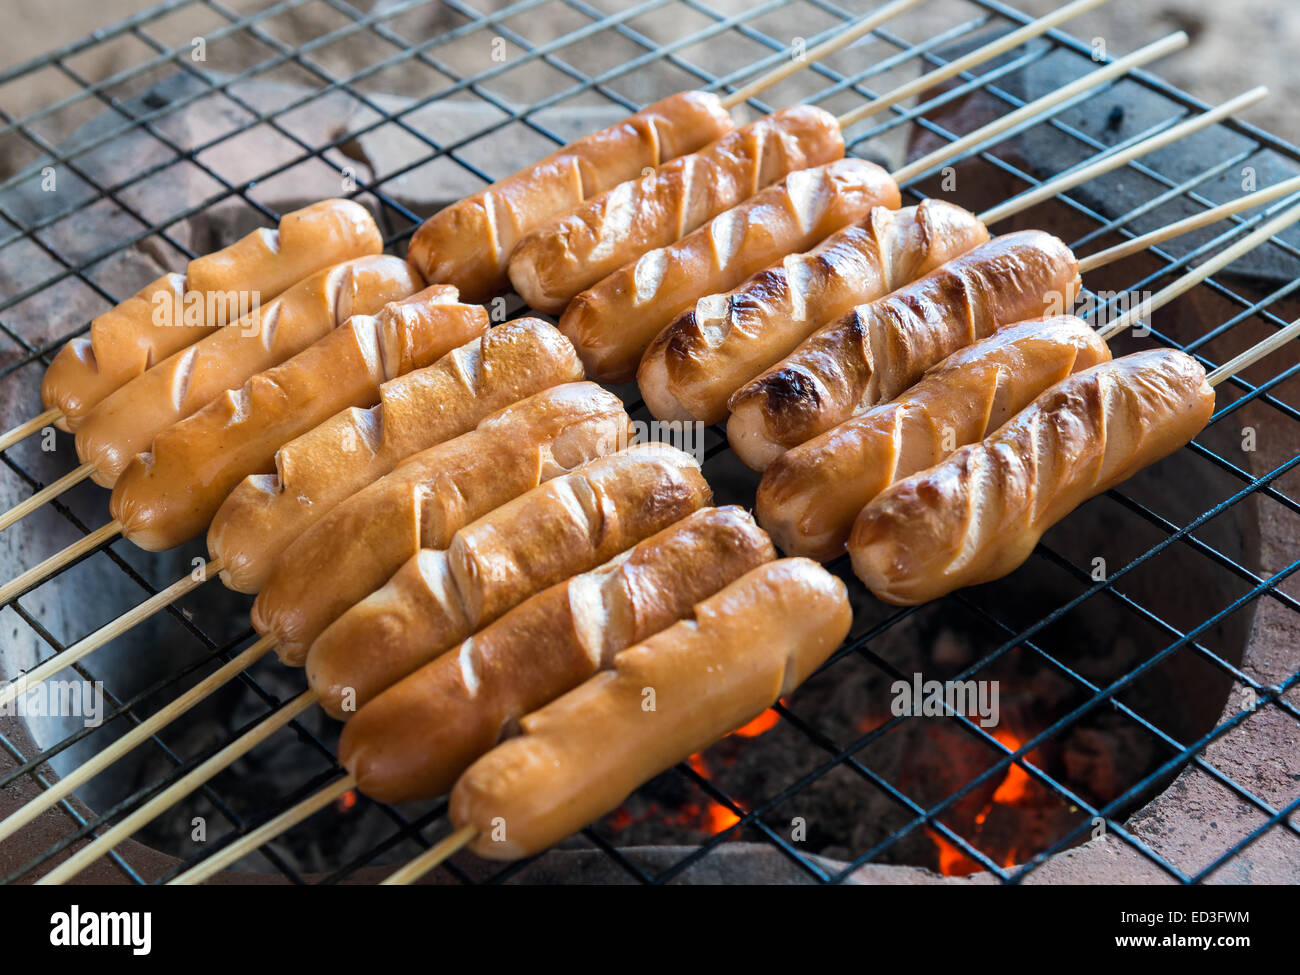 Grill Small Sausage Stock Photos & Grill Small Sausage Stock Images ...